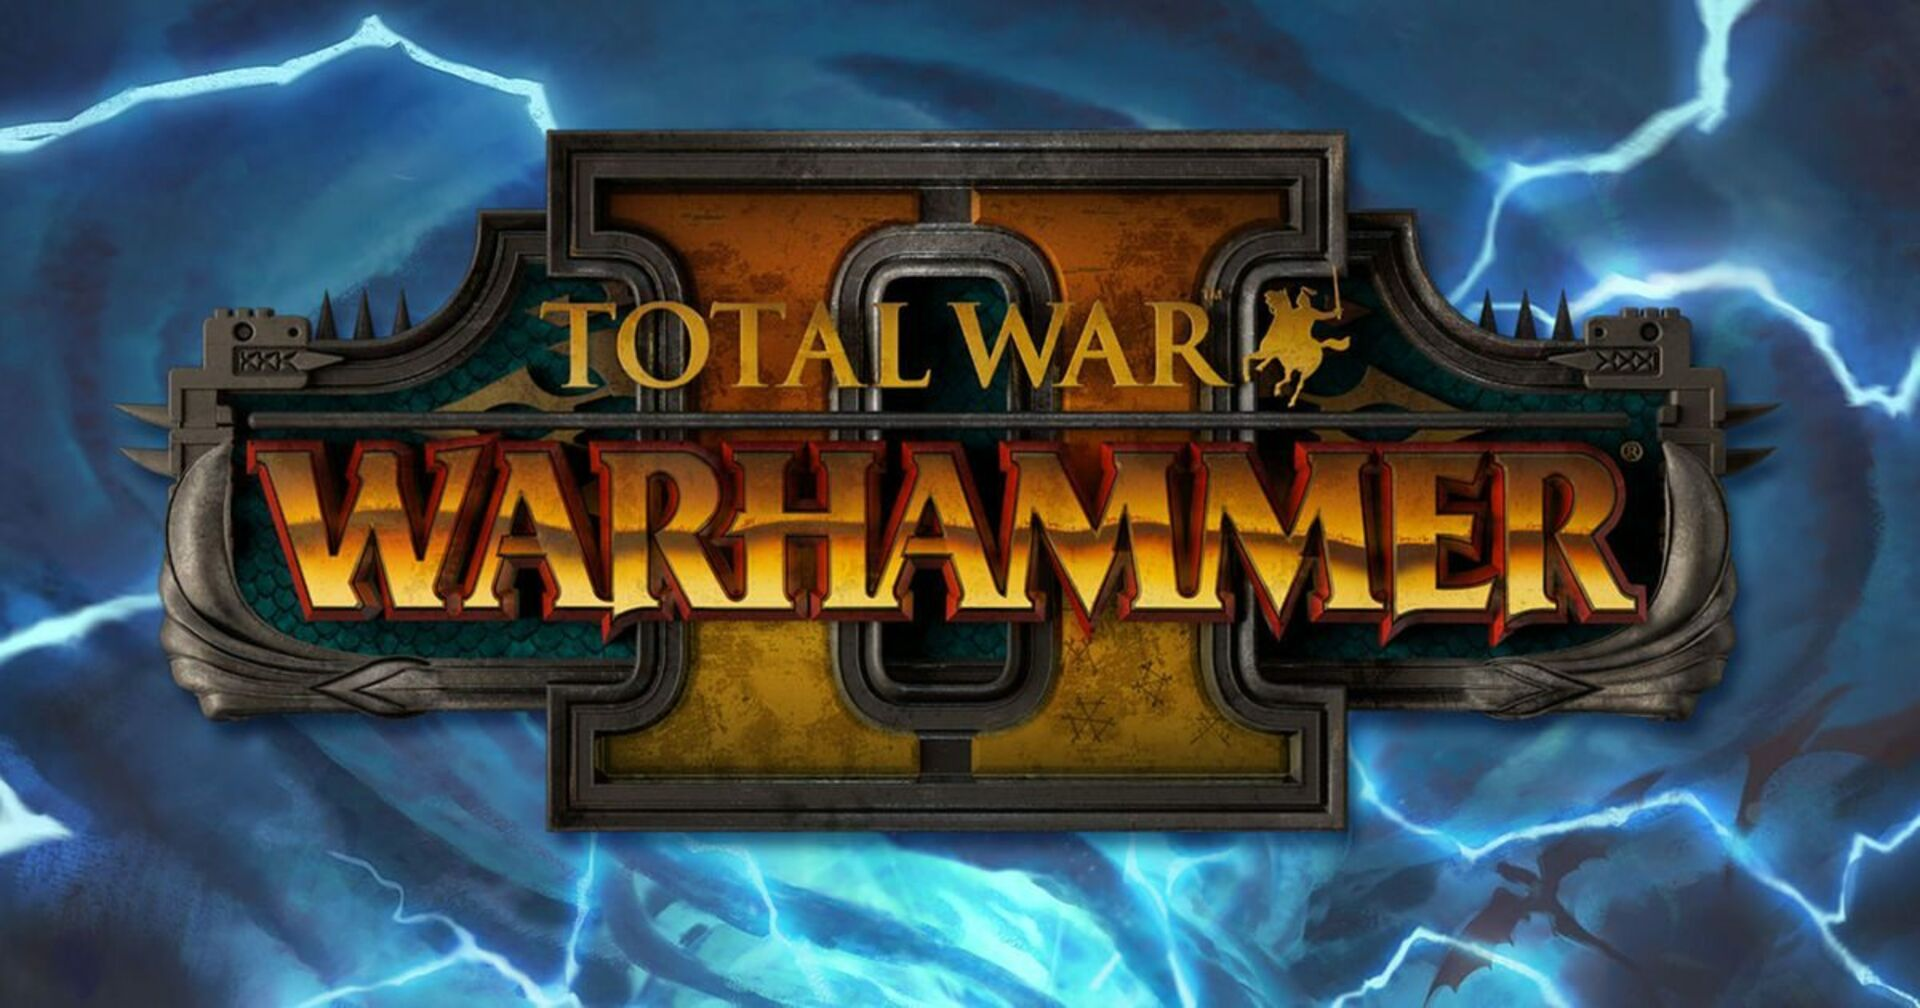 Get up to 90% off Warhammer games with Humble this week